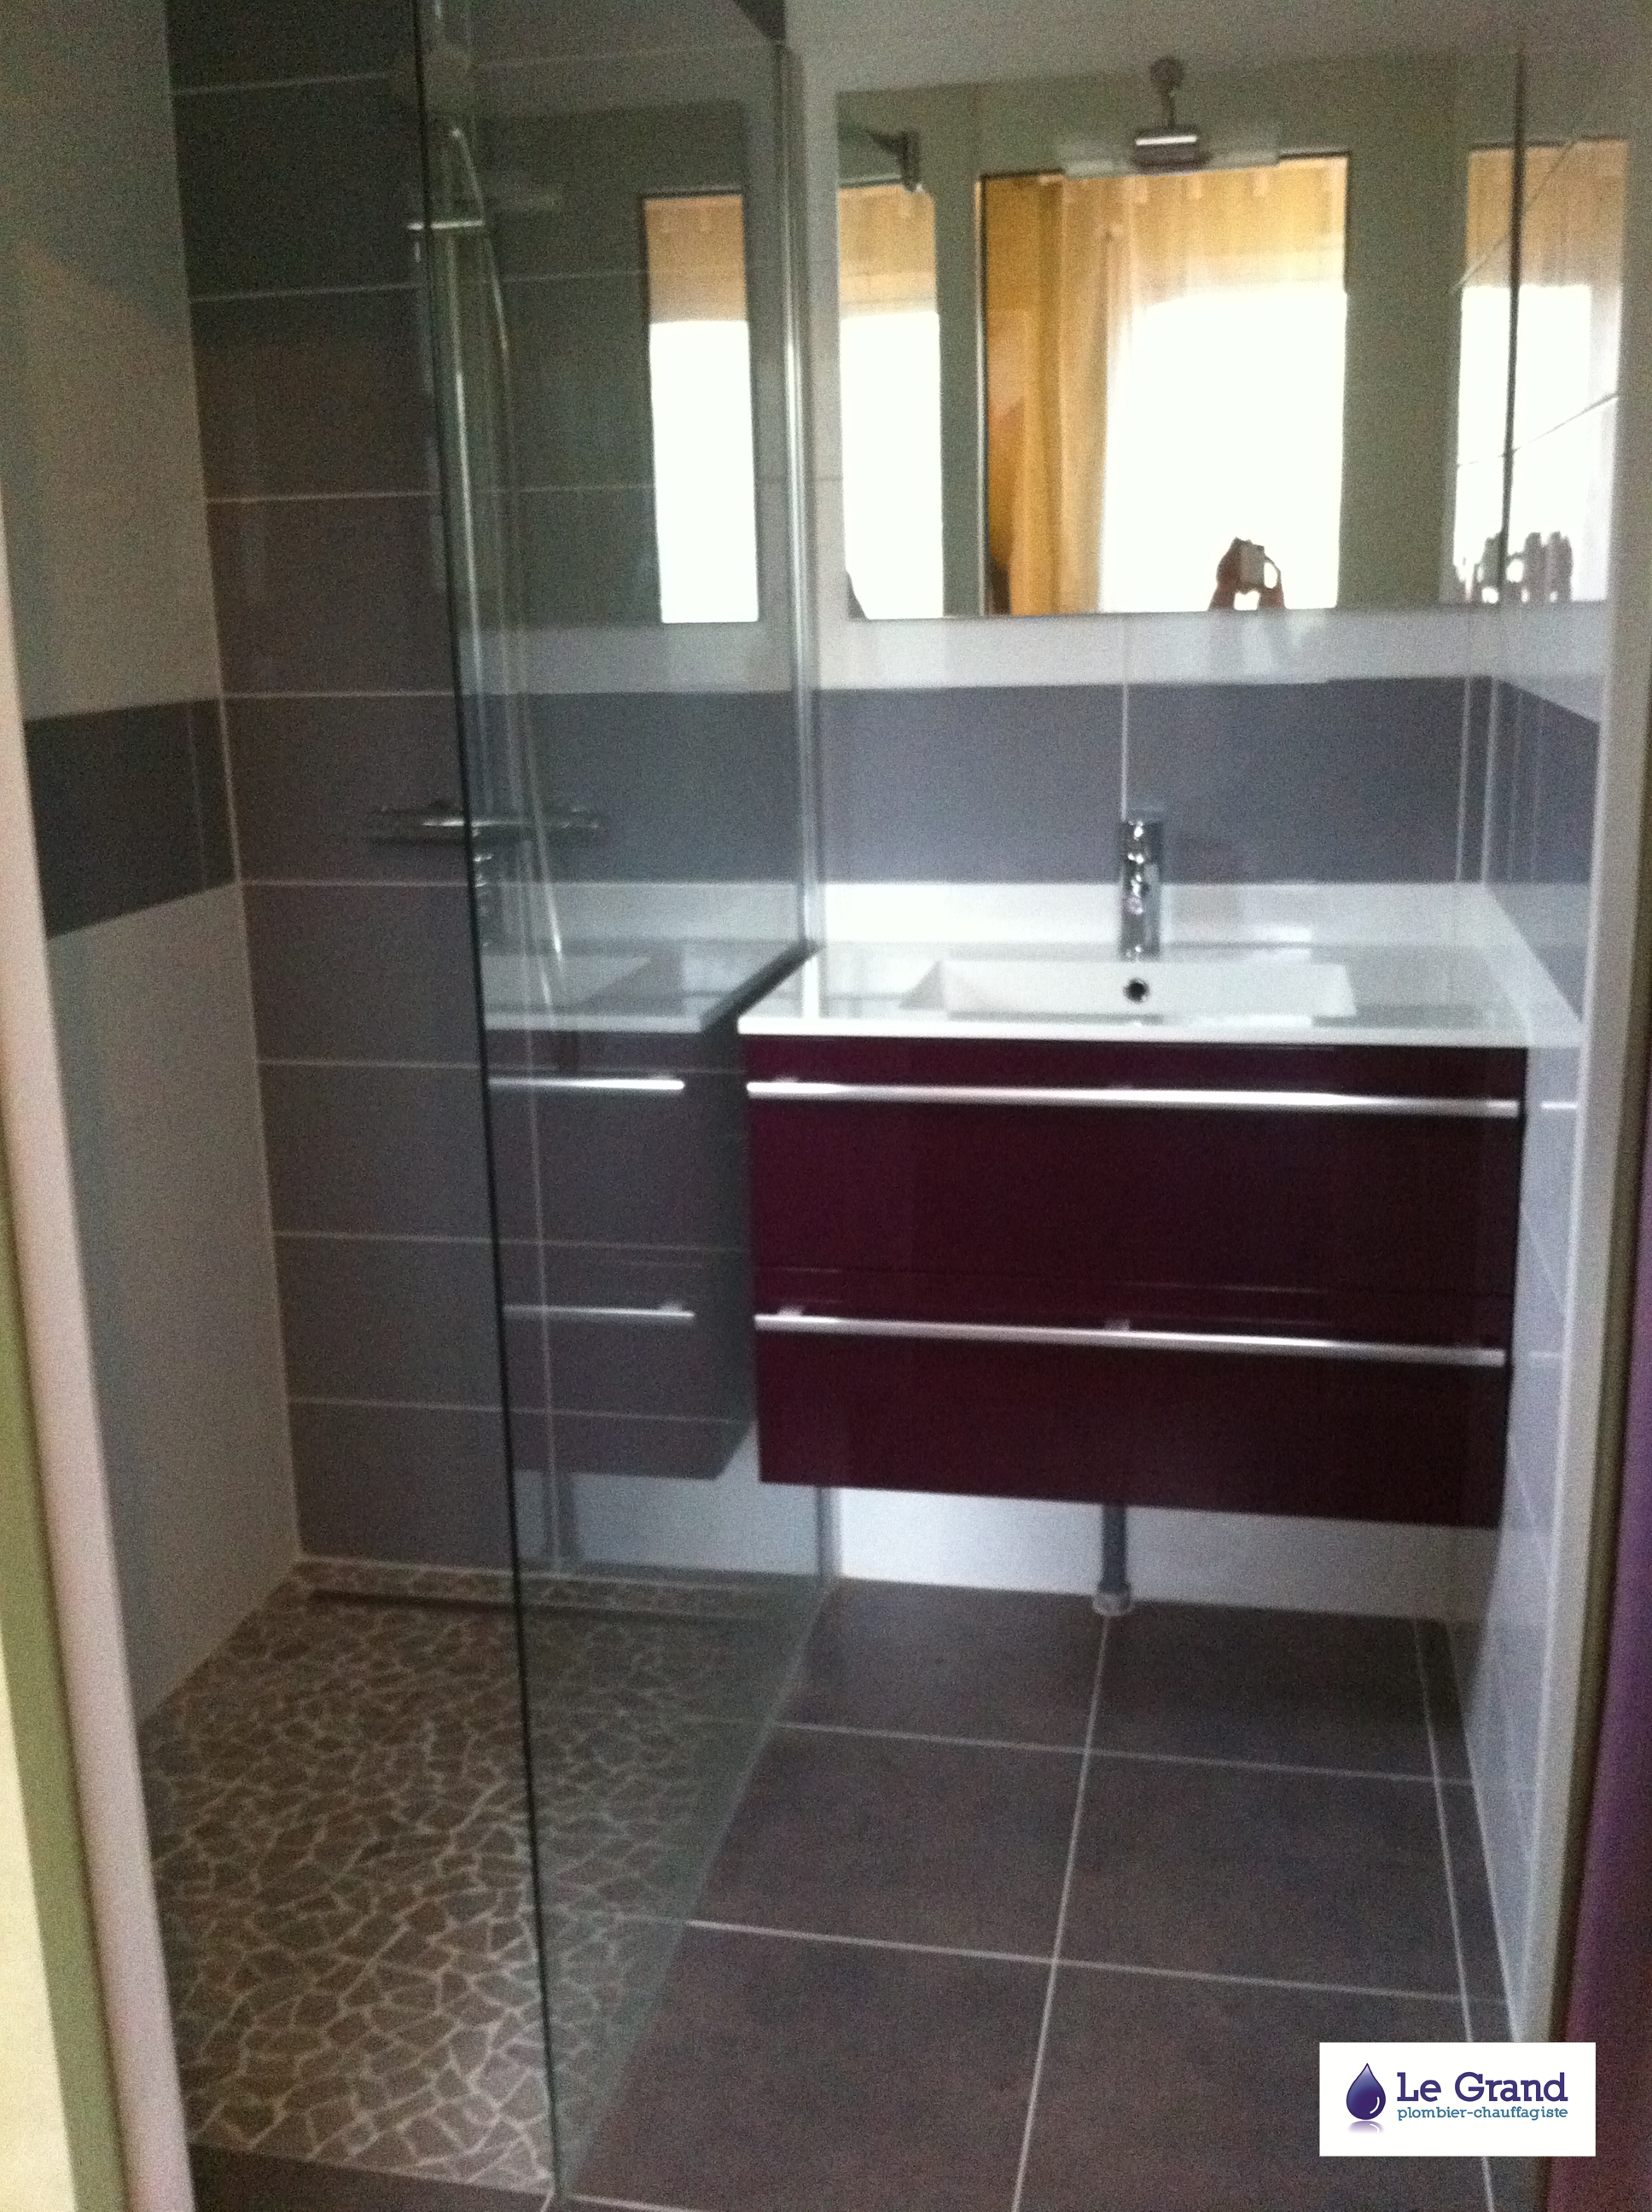 301 moved permanently - Meuble salle de bain italienne ...